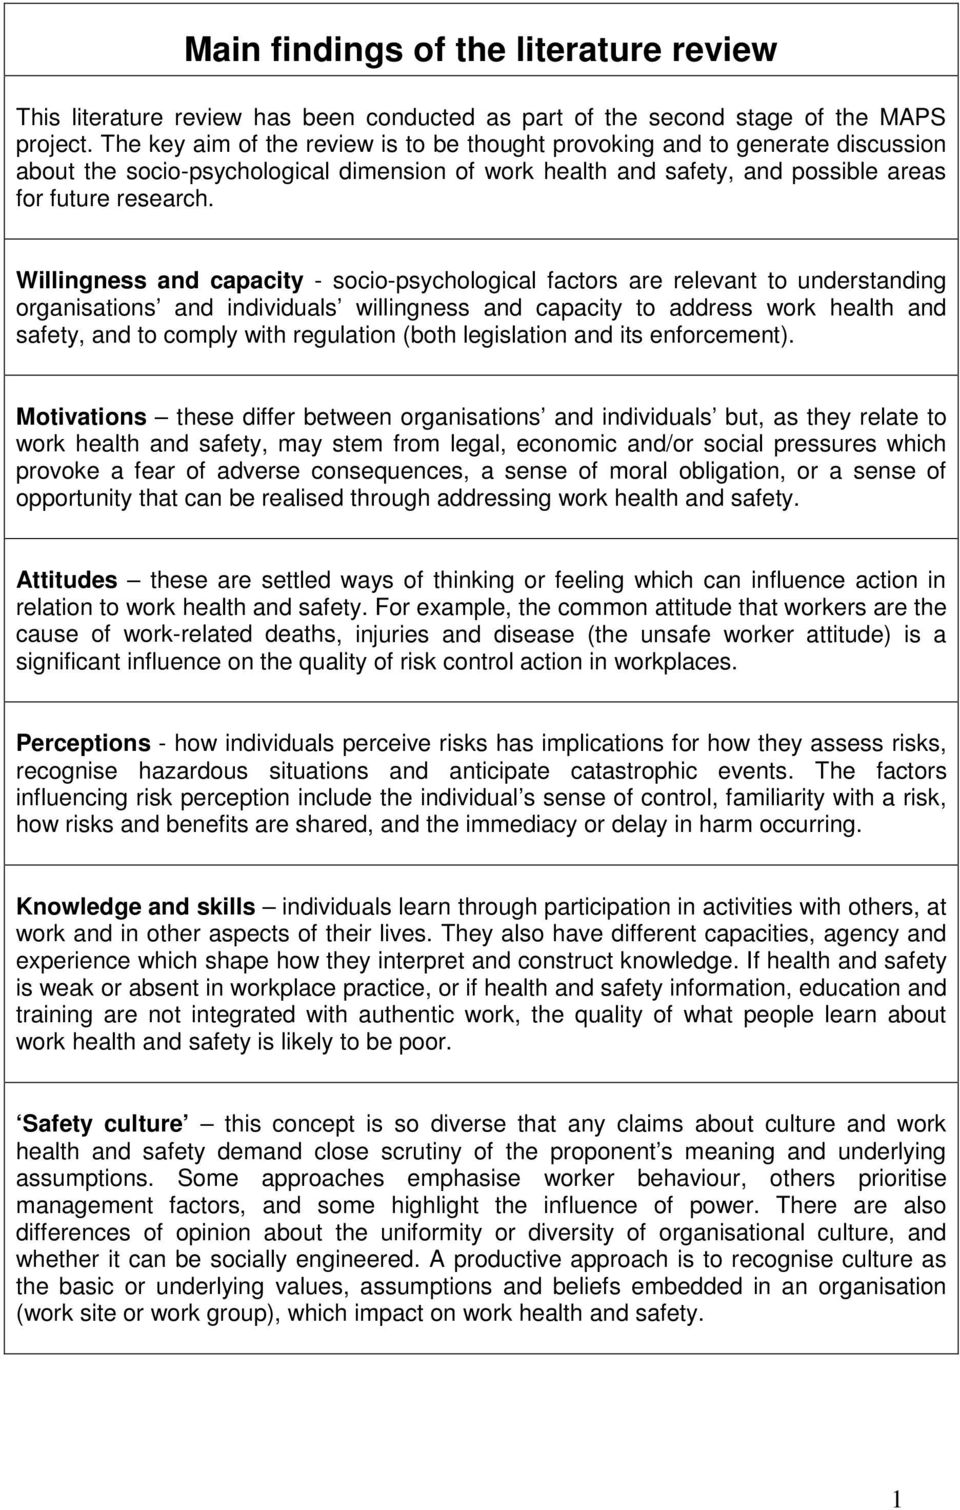 Willingness and capacity - socio-psychological factors are relevant to understanding organisations and individuals willingness and capacity to address work health and safety, and to comply with